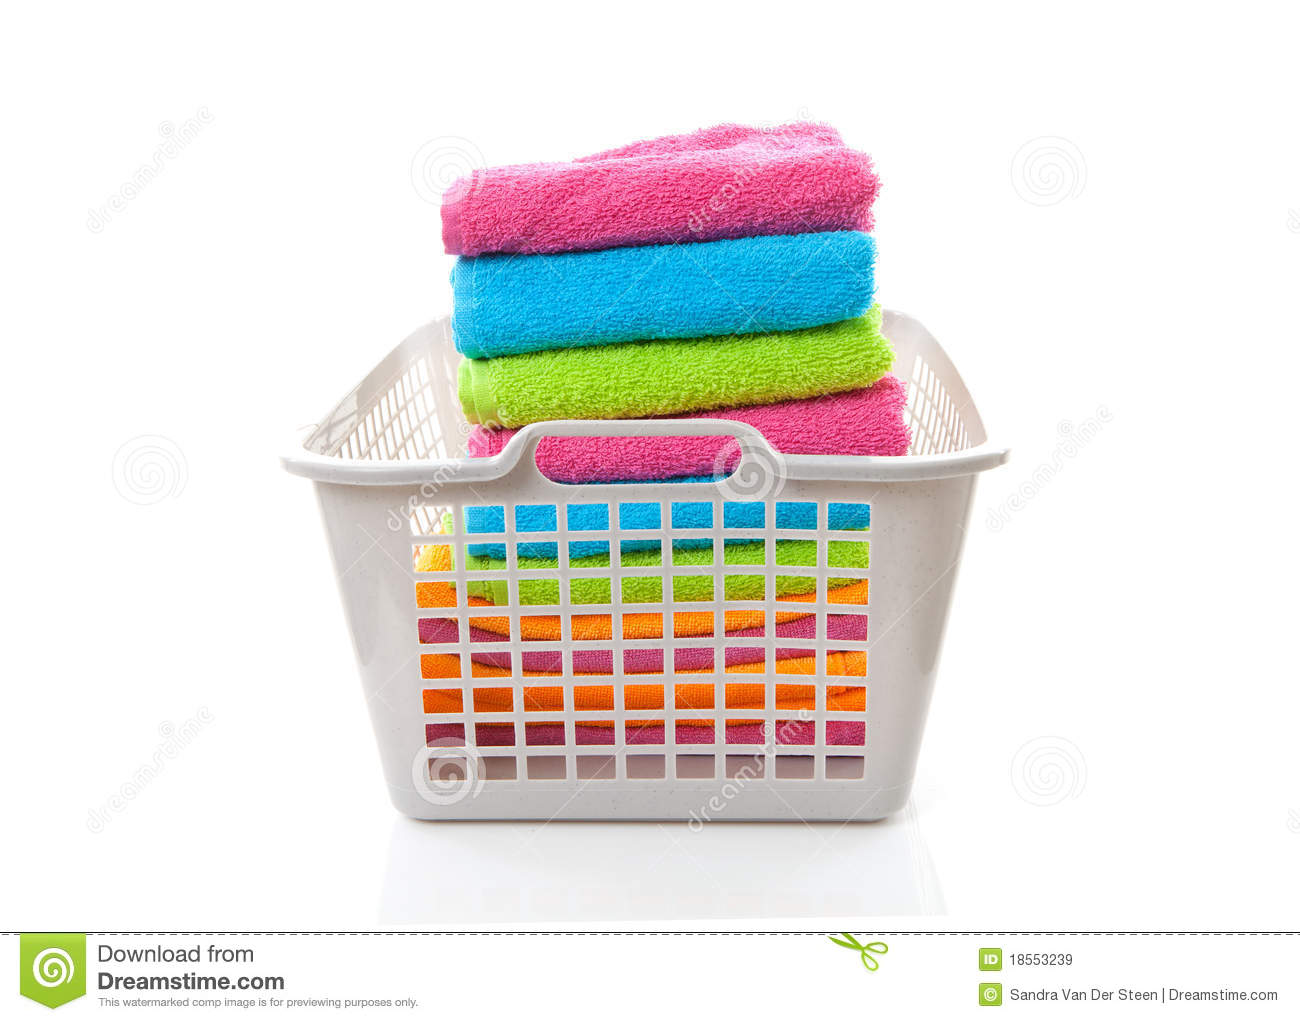 Laundry Basket Filled With Colorful Folded Towels Royalty Free Stock